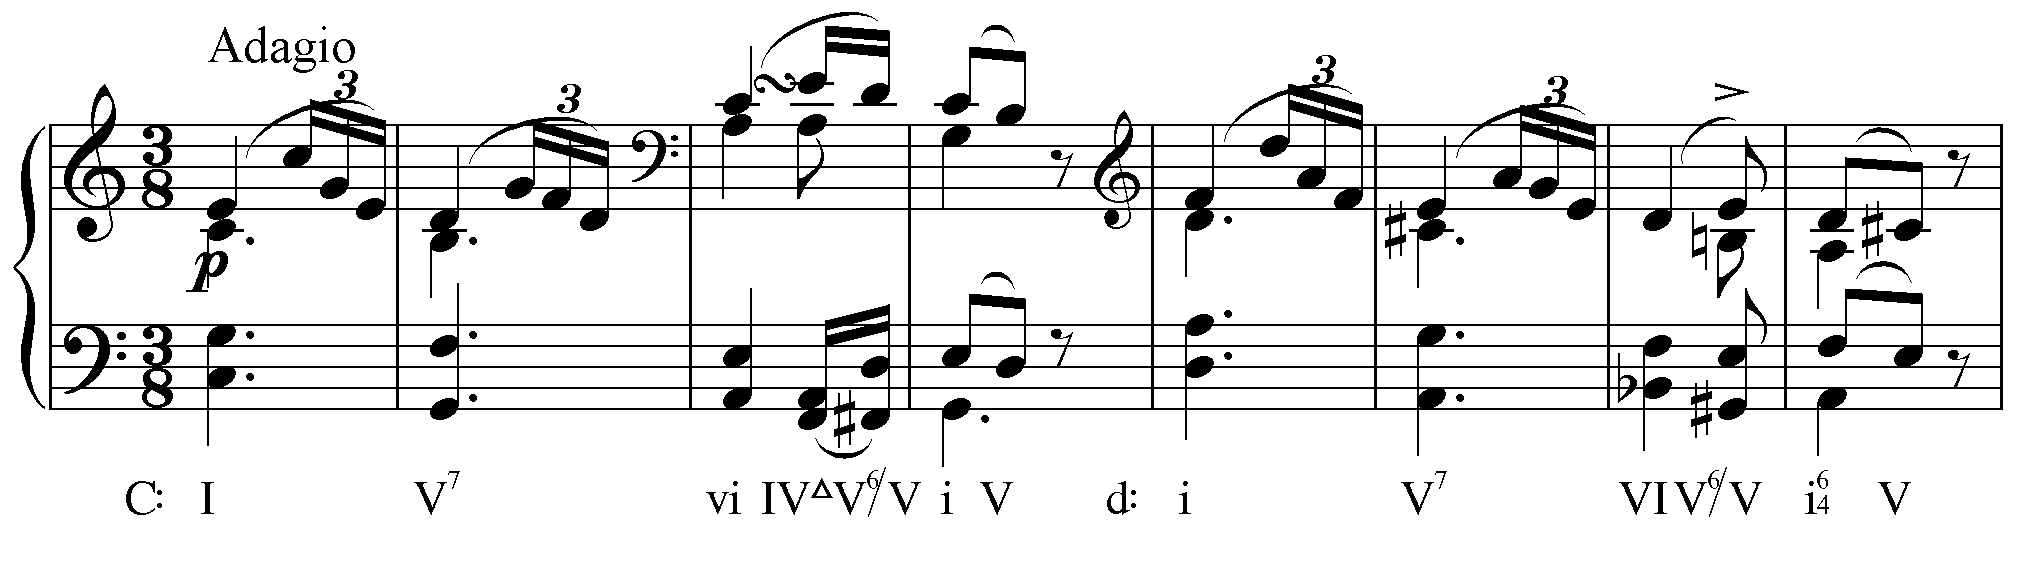 sequential modulation in schubert, sonata in e major, movement iii.png